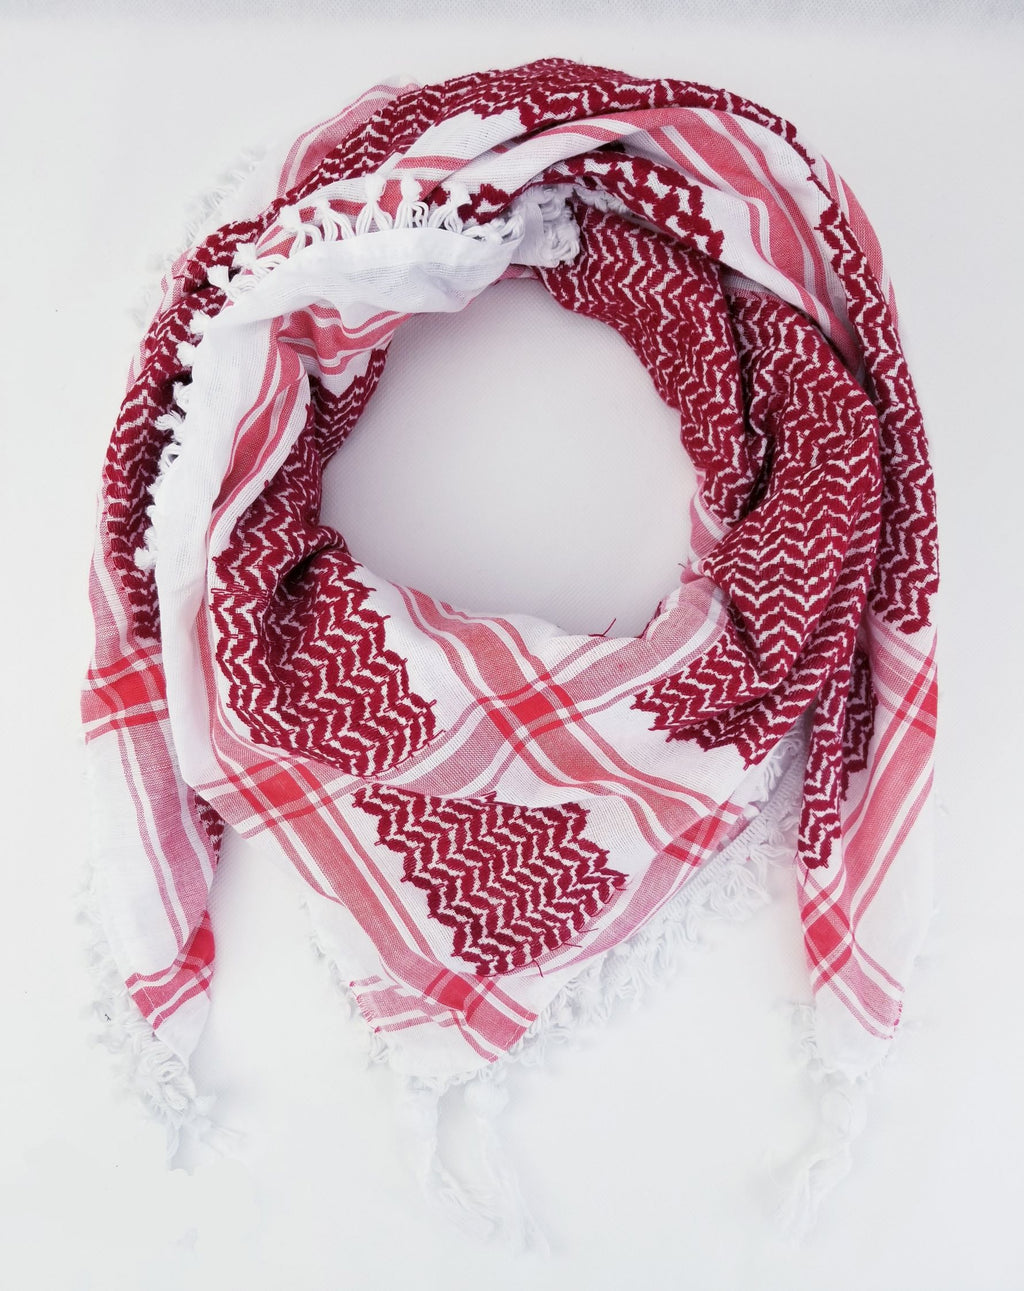 Hirbawi Keffiyeh Scarf Made in Palestine - Red Color